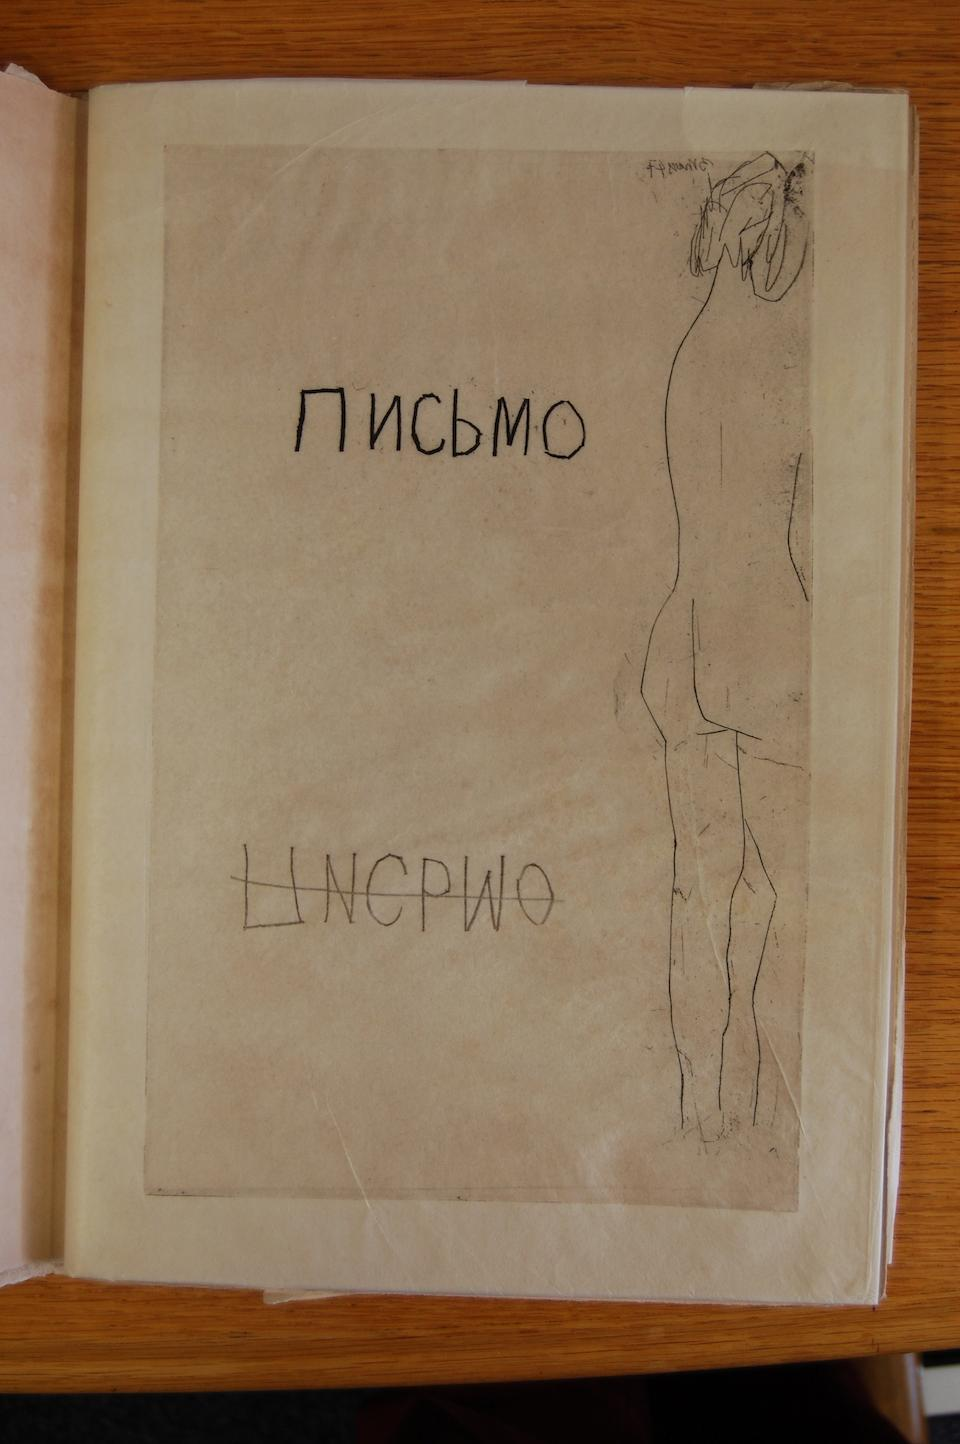 """PICASSO (PABLO) ILIAZD, Pseudonym of ILIA ZDANEVICH. Pismo [in Russian], NUMBER 46 OF 50 COPIES """"sur Japon ancien"""", from an overall edition of 66 copies, SIGNED BY PICASSO and the author on the colophon leaf, Paris, Latitud curanta y uno, [1948]"""